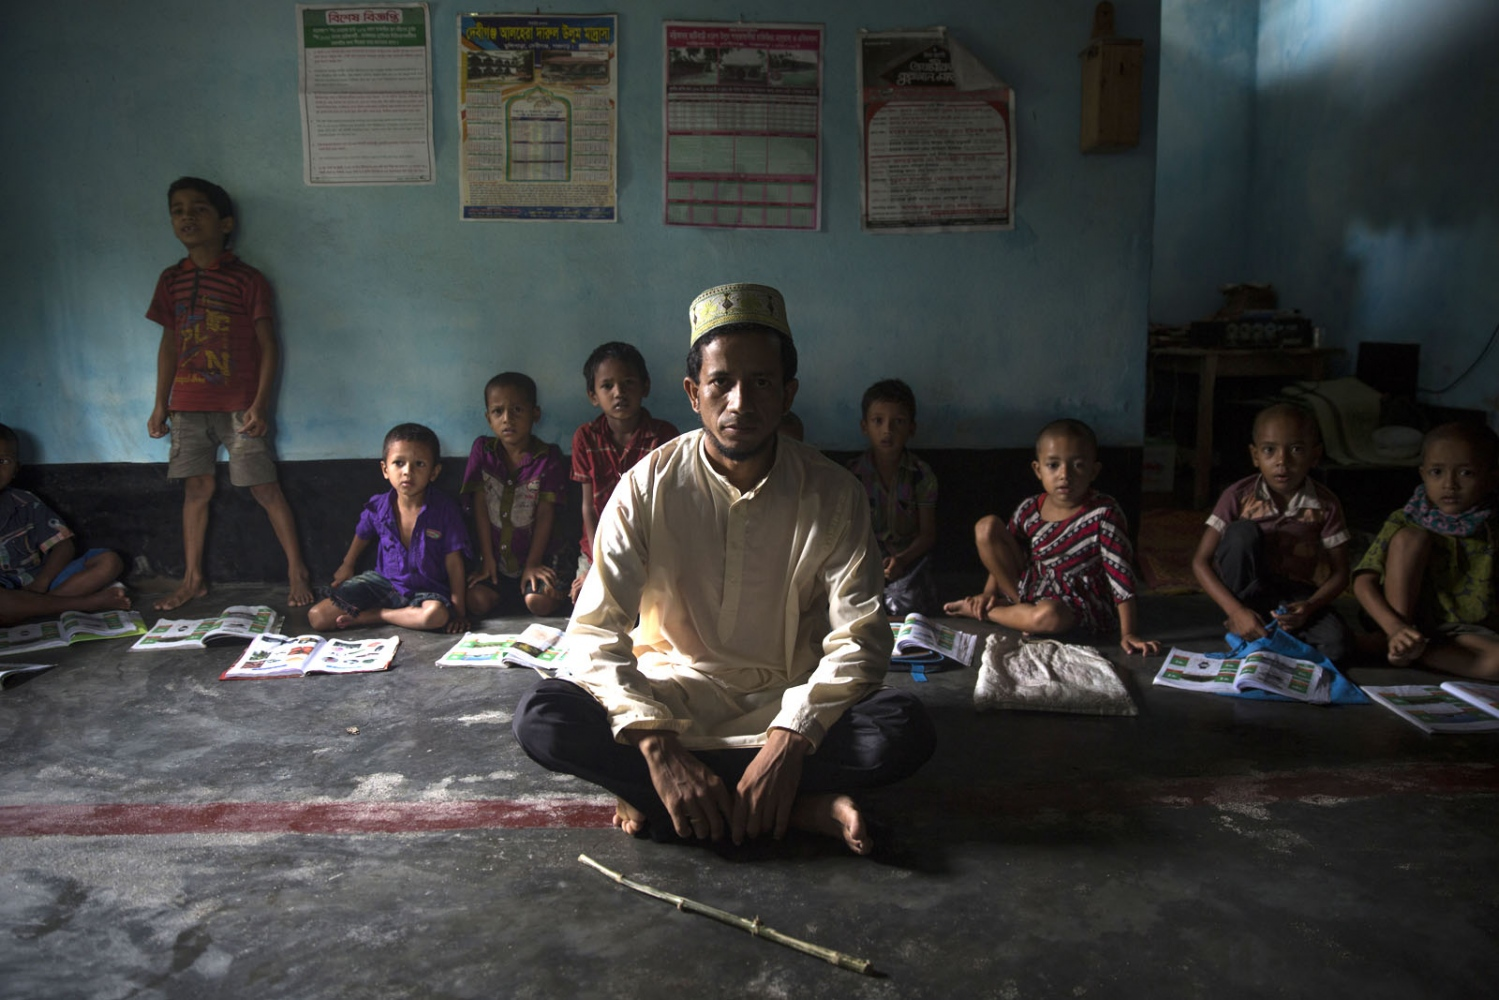 In Maja Para village in the Dhoholakhagrabari enclave young students and their teacher sit in class of a madrassa. Because enclave children have a difficult time accessing the education system in Bangladesh the locals of this enclave formed an Islamic Foundation funded on donations and built this school to give their children some form of education.